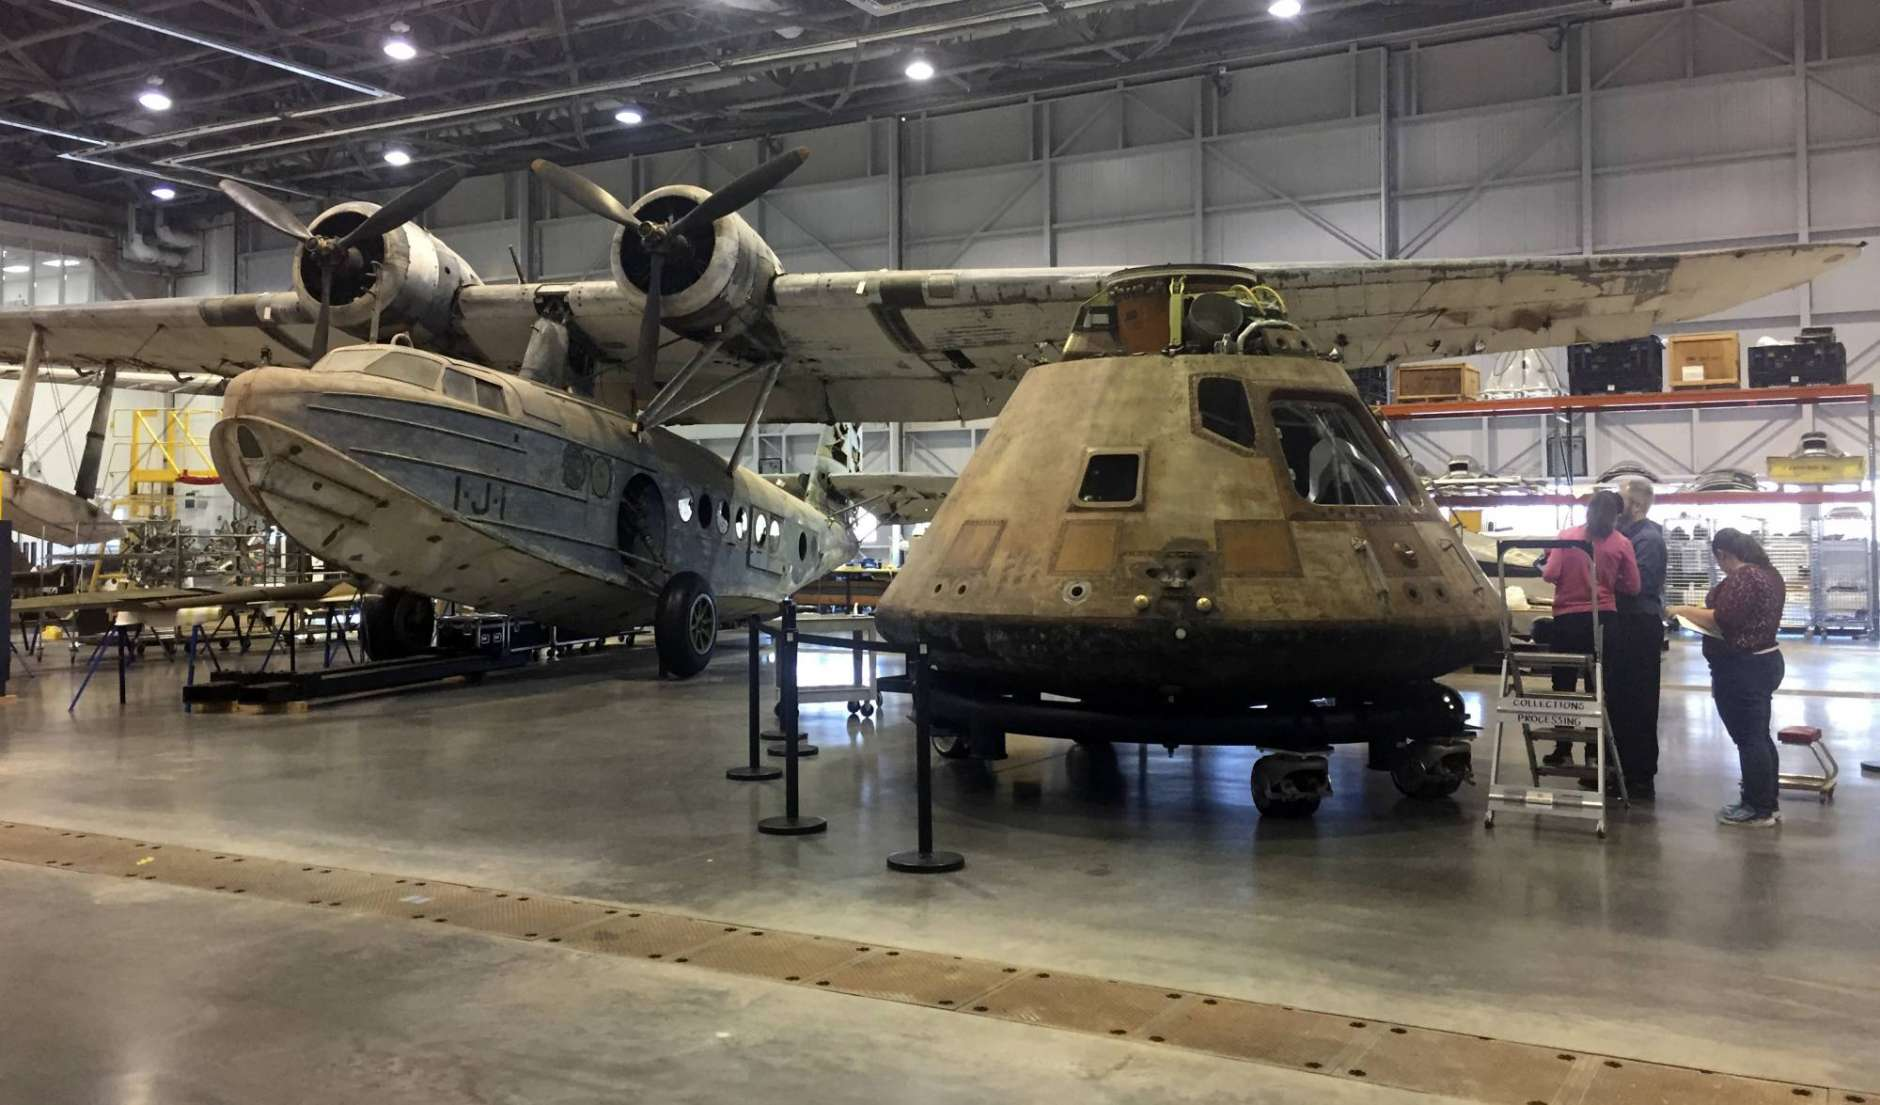 In this photo taken Feb. 17, 2017, the Apollo 11 capsule sits in the restoration hanger at the National Air and Space Museum's Steven F. Udvar-Hazy Center in Chantilly, Va., ahead of a planned four-city tour. The Apollo 11 command module, which travelled more than 950,000 miles to take Americans to the moon and back in 1969, is going on a road trip, leaving the Smithsonian for the first time in more than four decades. The airplane at left is the only aircraft in the Smithsonian's collection that was stationed at Pearl Harbor on Dec. 7, 1941, the day the naval base at the harbor was attacked by Japan. (AP Photo/Jessica Gresko)